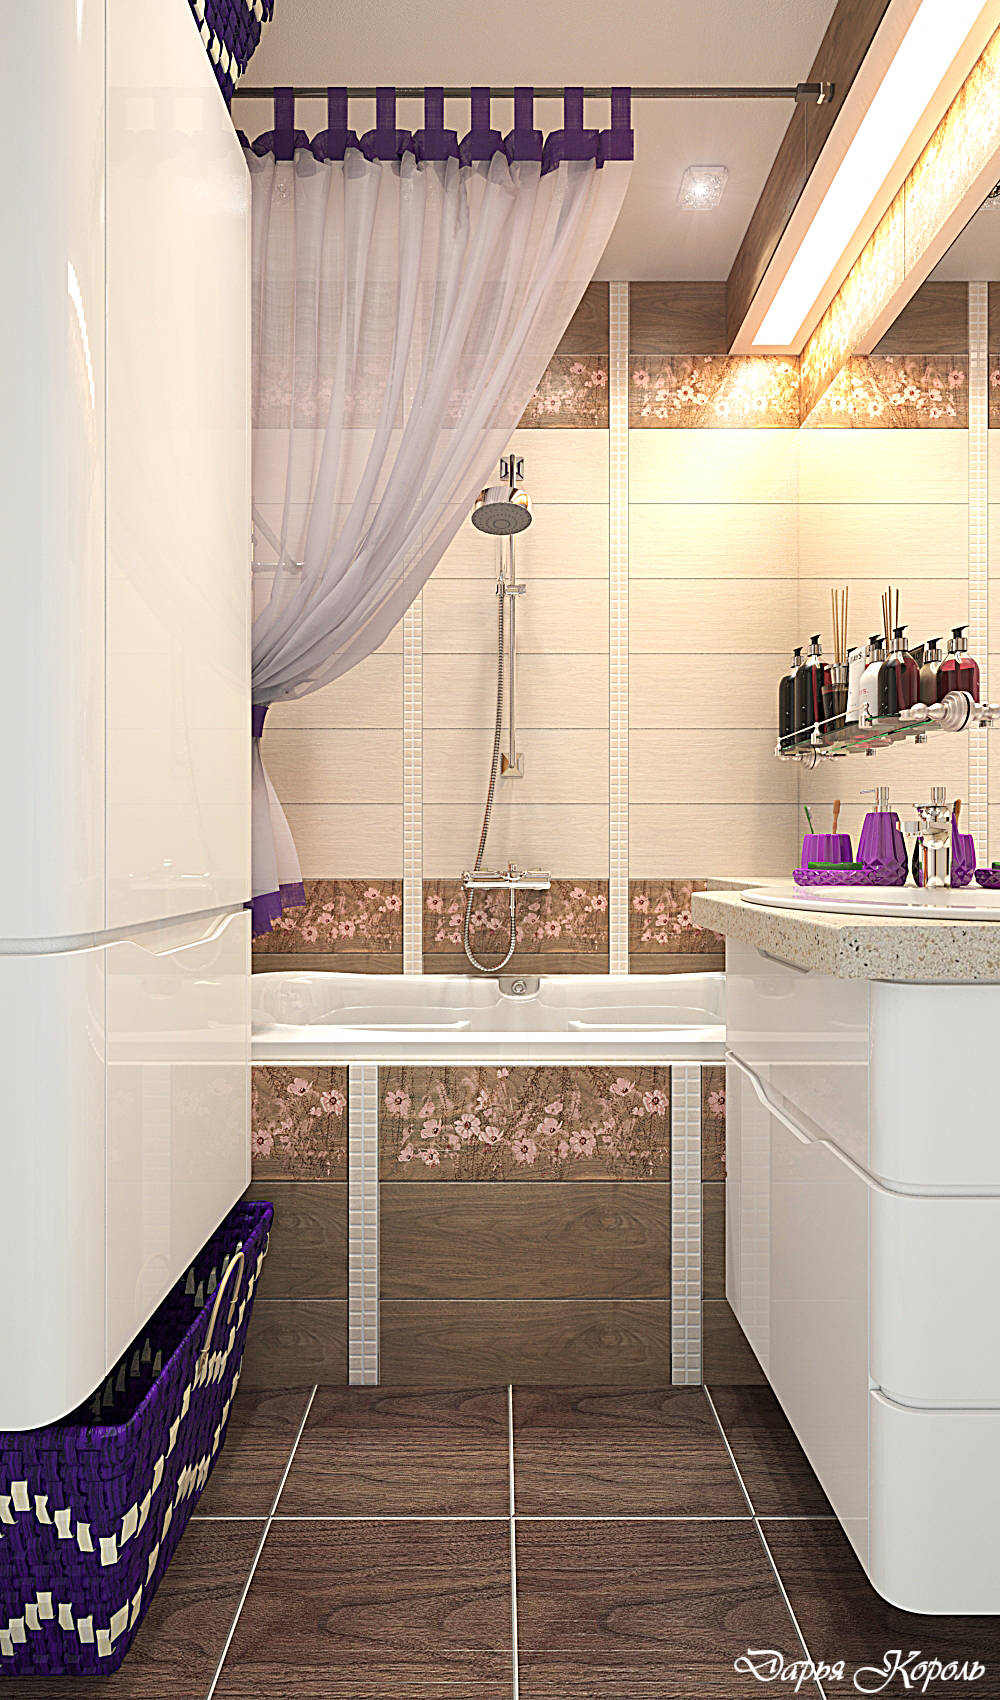 Bathroom with a tree and flowers